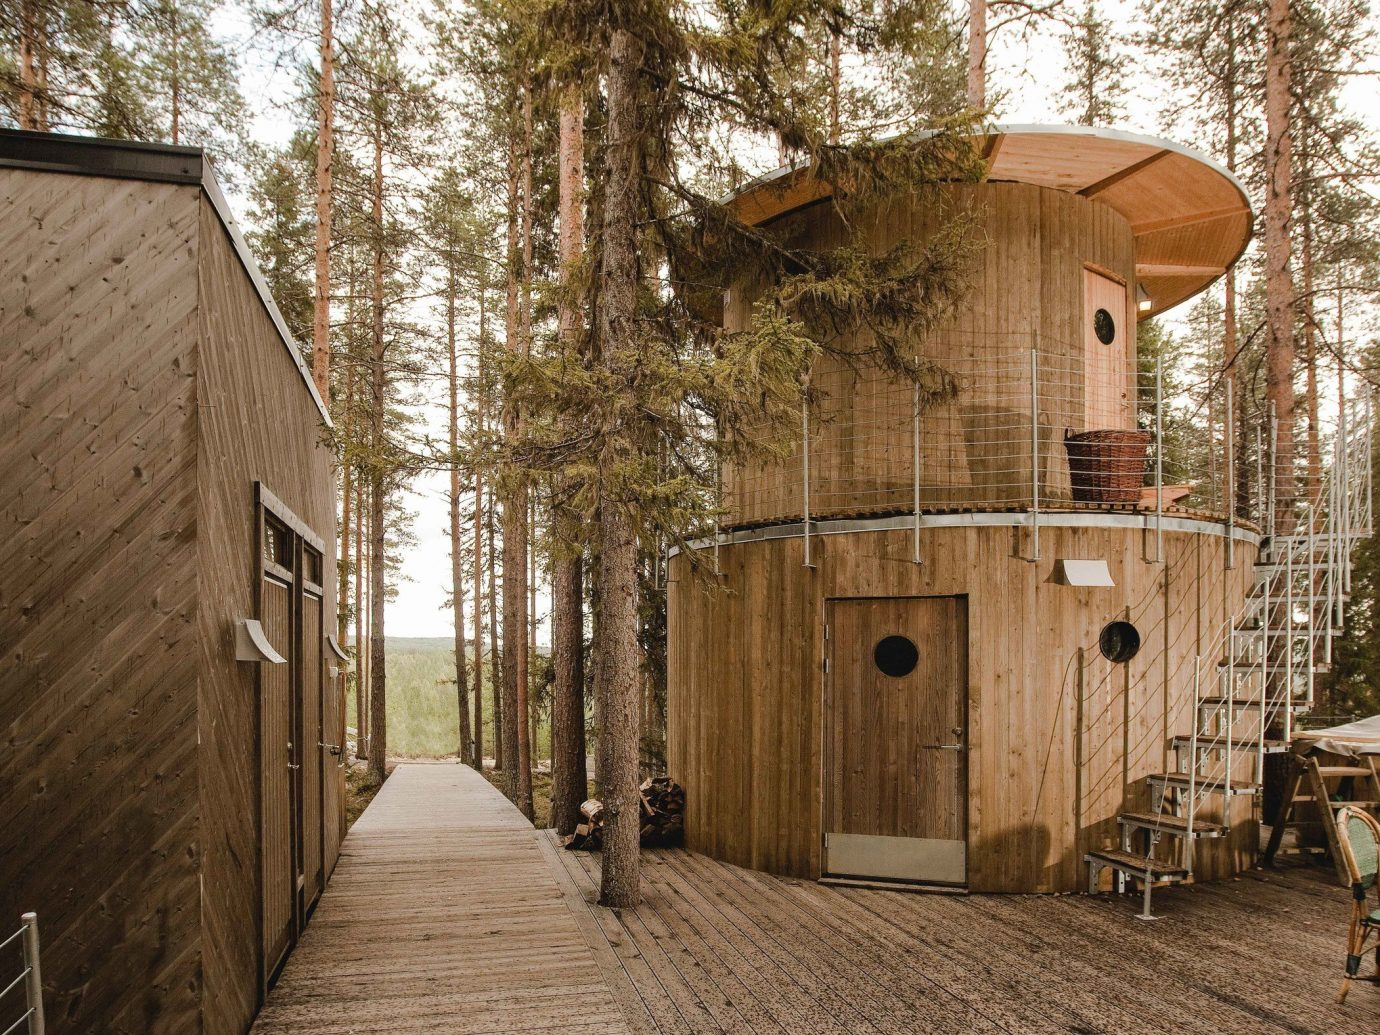 Boutique Hotels Sweden wood shed tree outdoor structure house